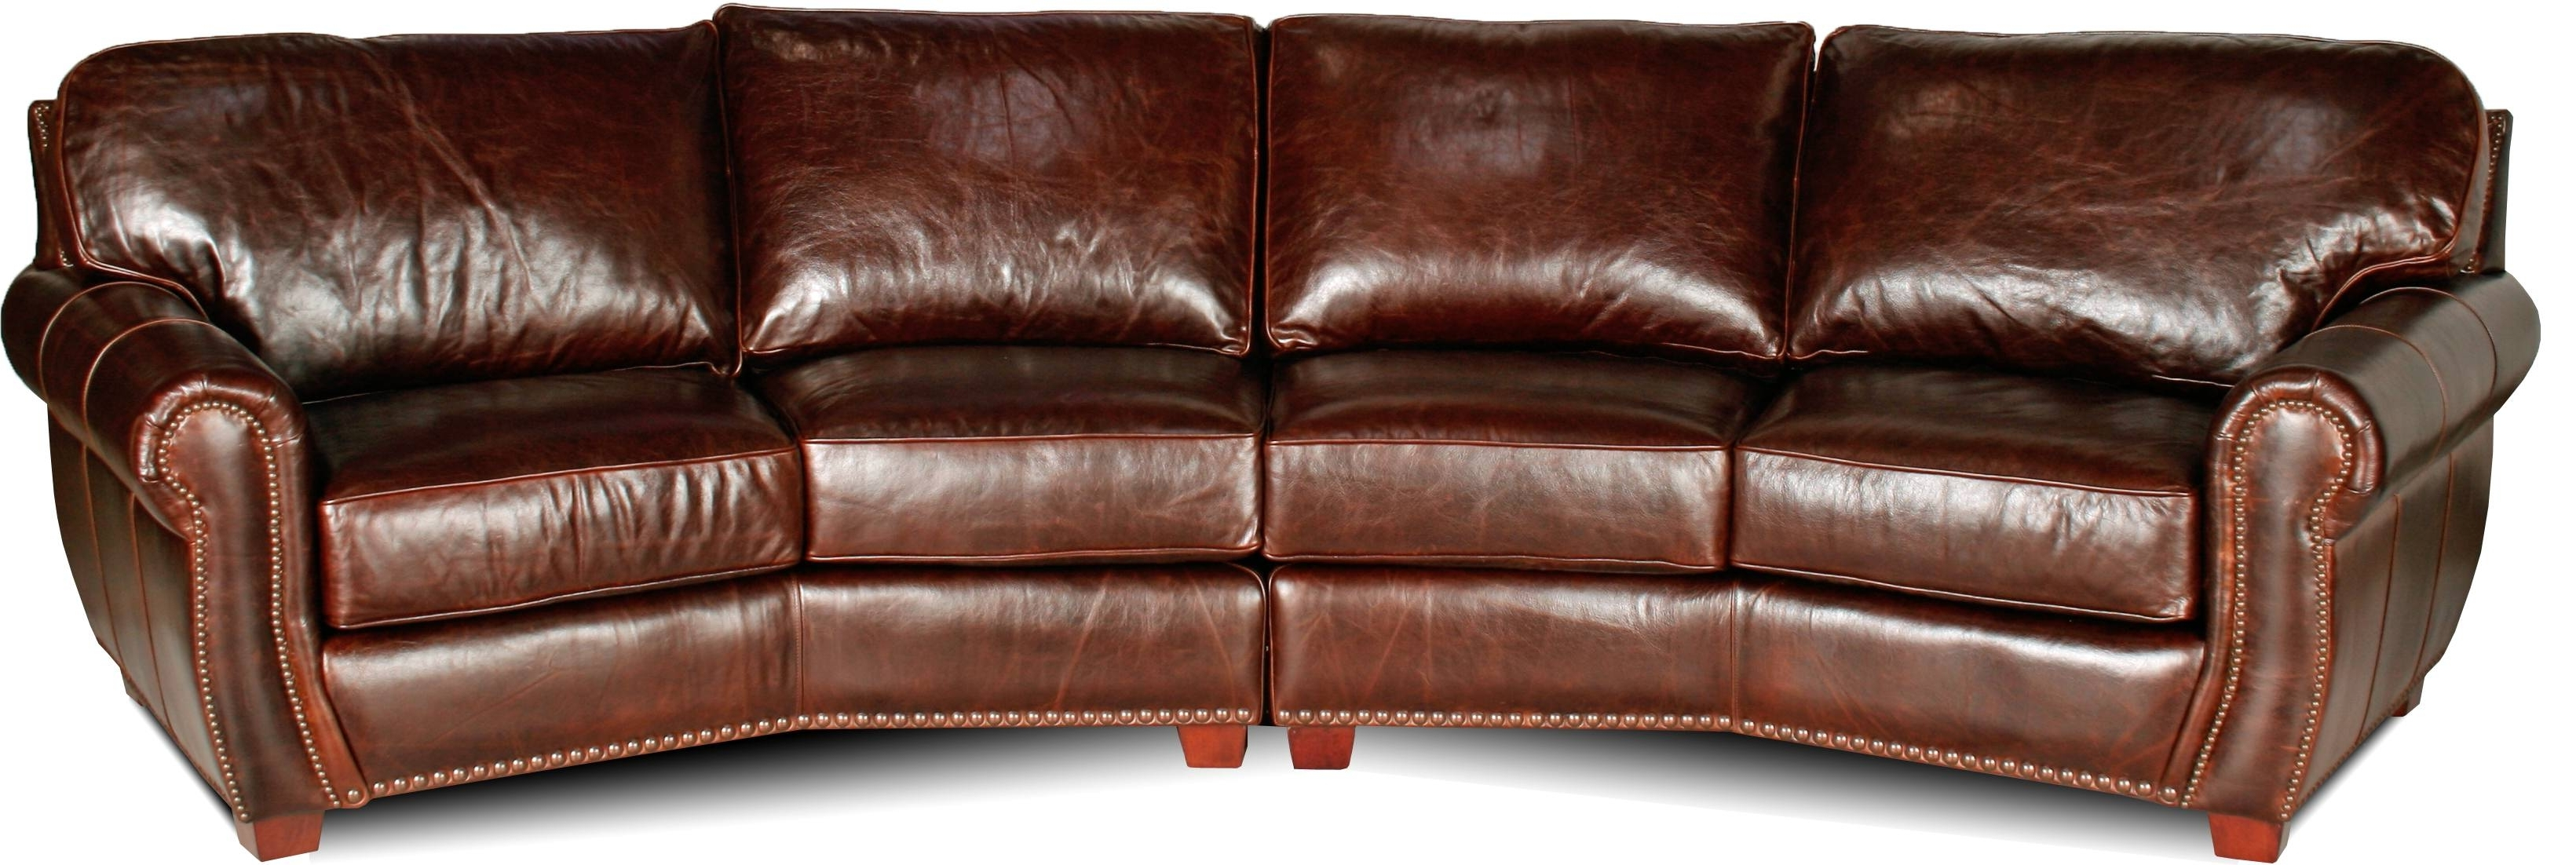 Leather Creations Furniture Pertaining To Large 4 Seater Sofas (View 19 of 20)